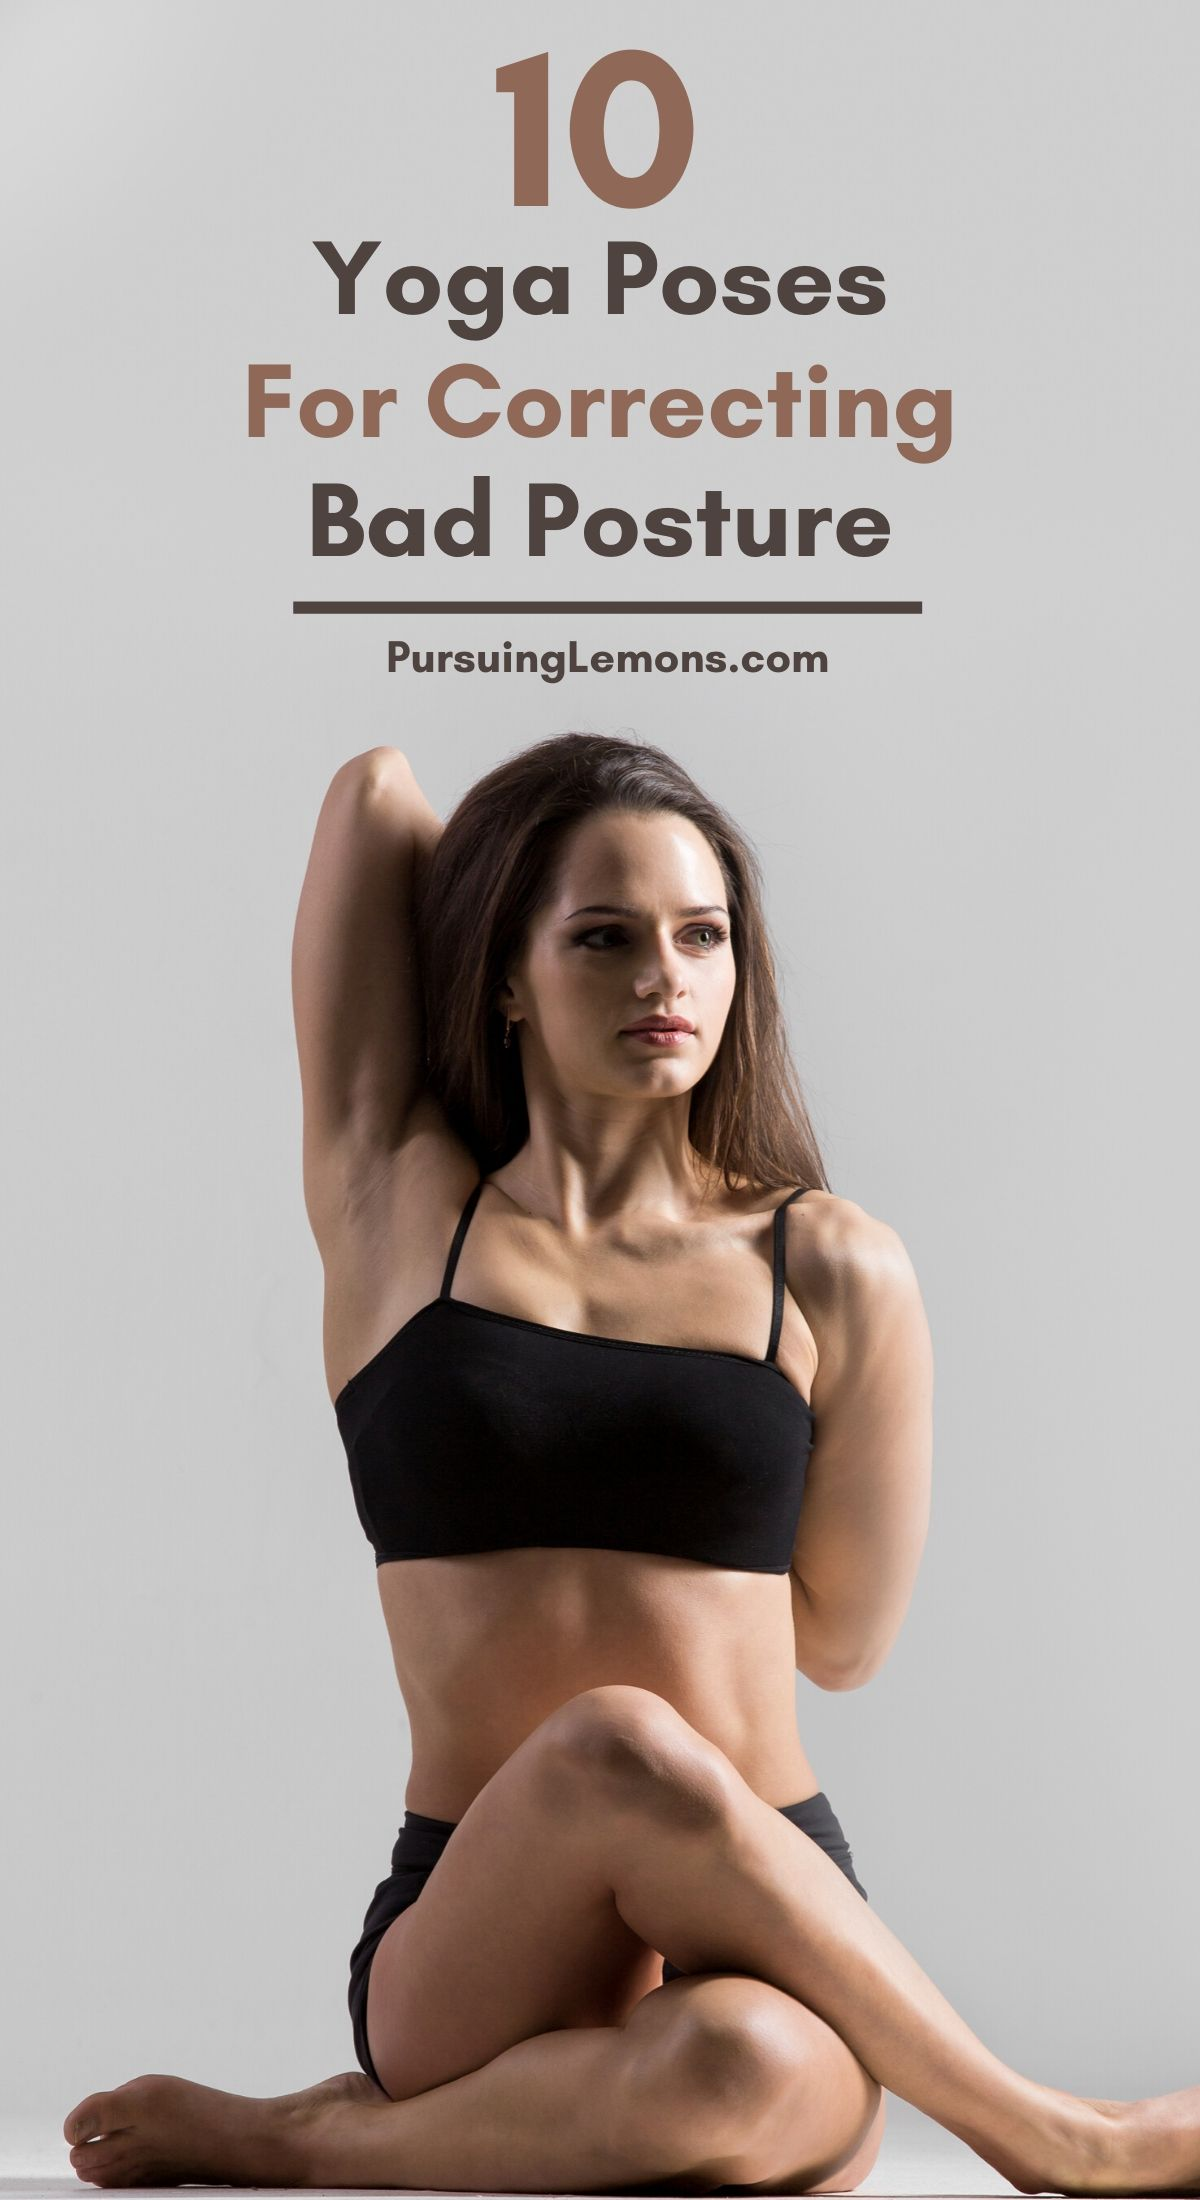 10 Yoga Poses For Correcting Bad Posture | Having sore neck and back pains that won't go away? Here are 10 yoga poses for correcting bad posture designed to strengthen your back and core muscles. #yoga #yogaforposture #yogaposes